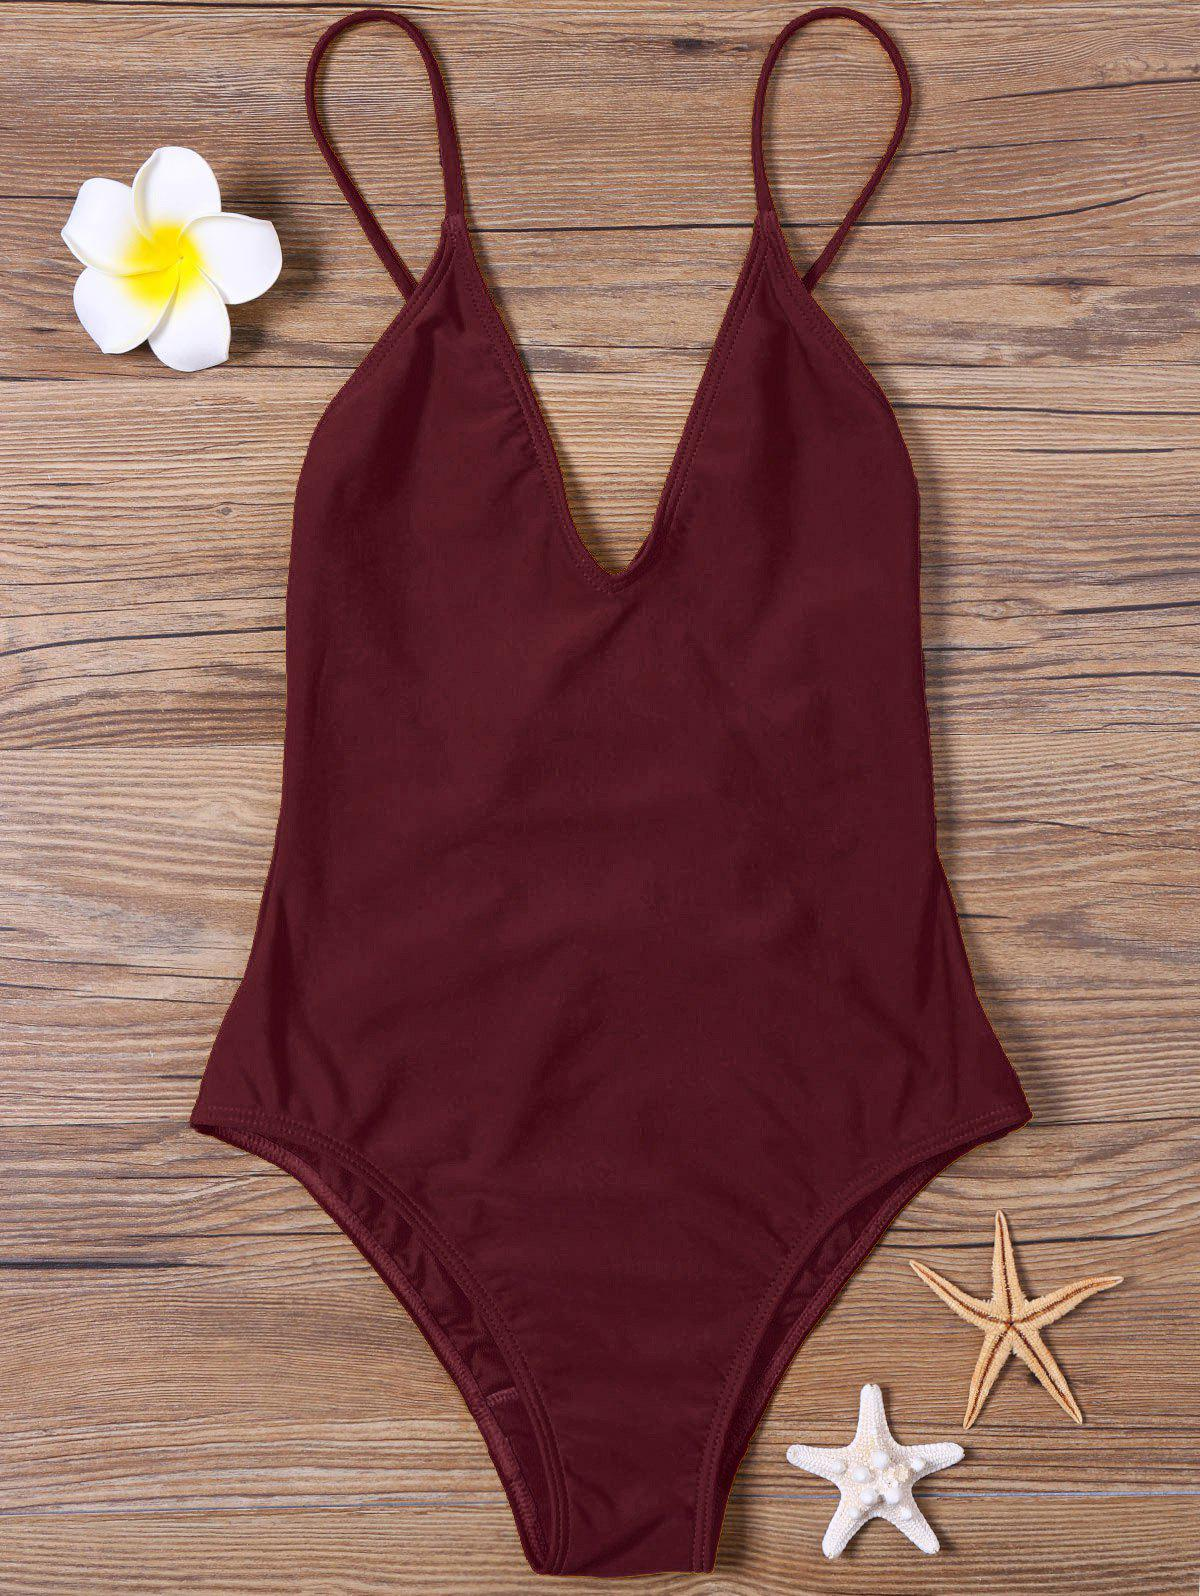 High Cut V Neck One Piece SwimsuitWOMEN<br><br>Size: 2XL; Color: DARK RED; Style: Sexy; Swimwear Type: One Piece; Gender: For Women; Material: Polyester,Spandex; Bra Style: Bralette; Support Type: Wire Free; Neckline: Spaghetti Straps; Pattern Type: Solid; Waist: High Waisted; Elasticity: Elastic; Weight: 0.2500kg; Package Contents: 1 x Swimsuit;